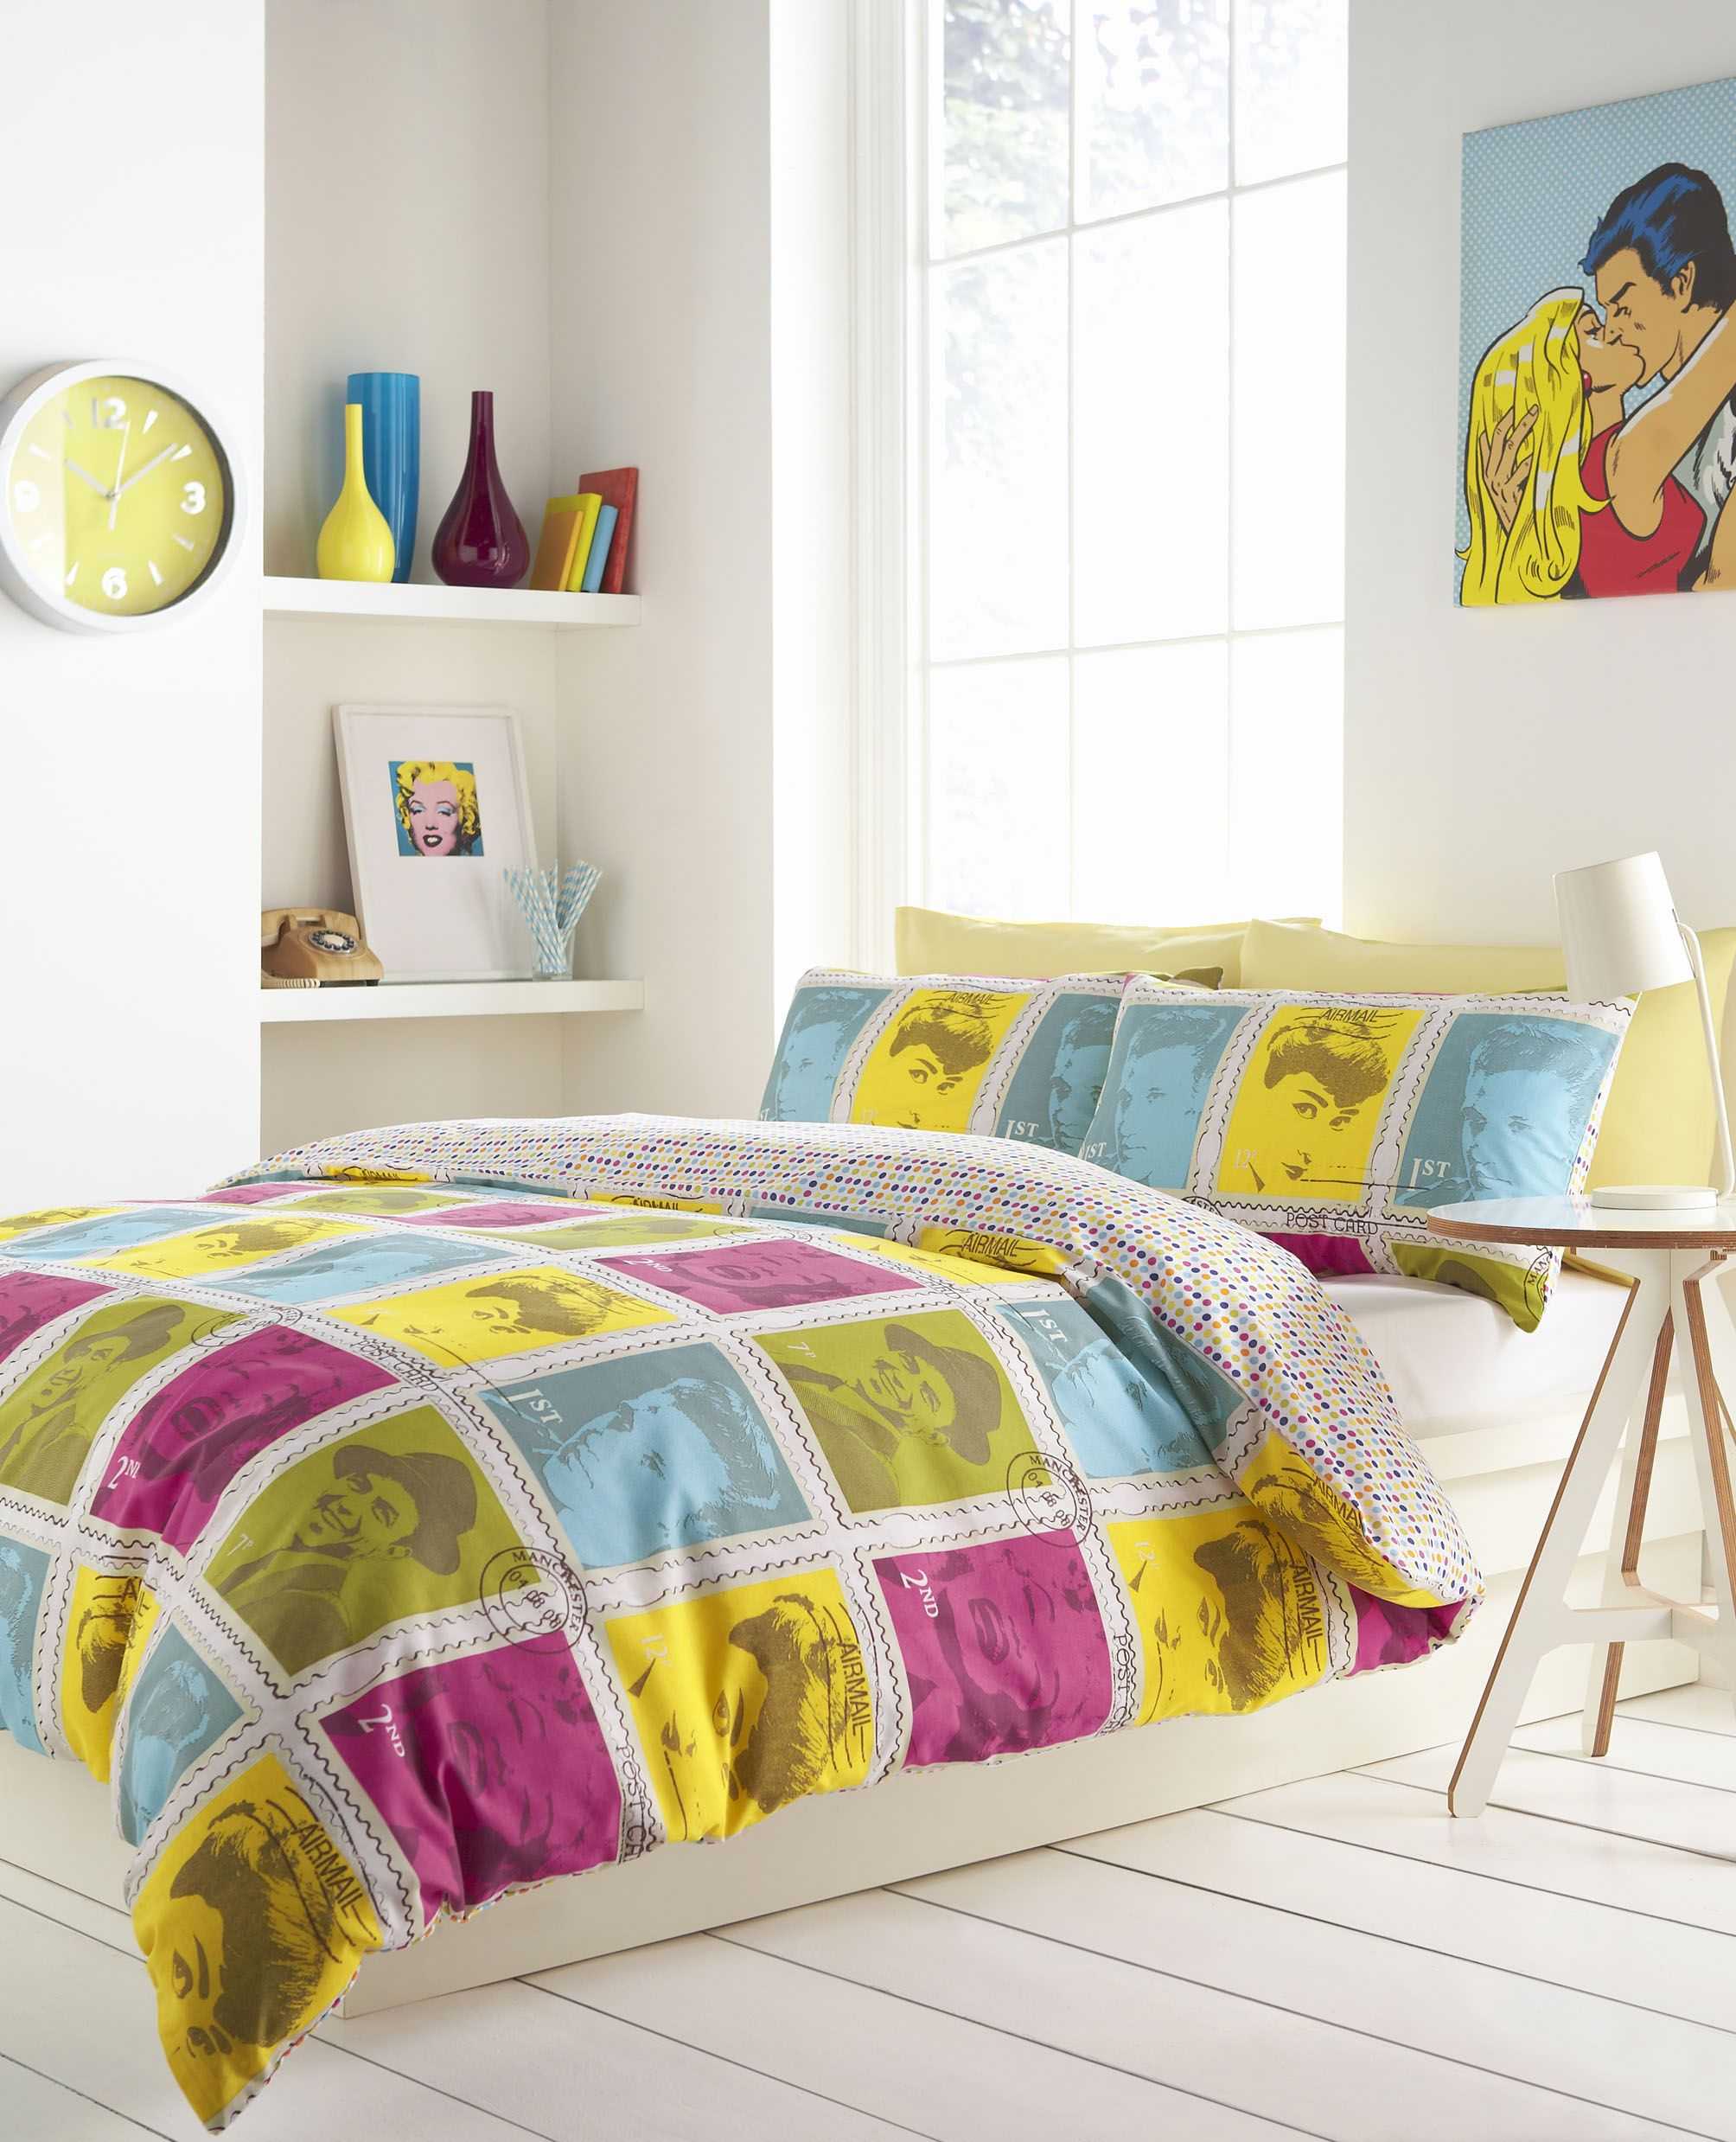 Wall of Fame Influenced by Popart Cheap bed linen